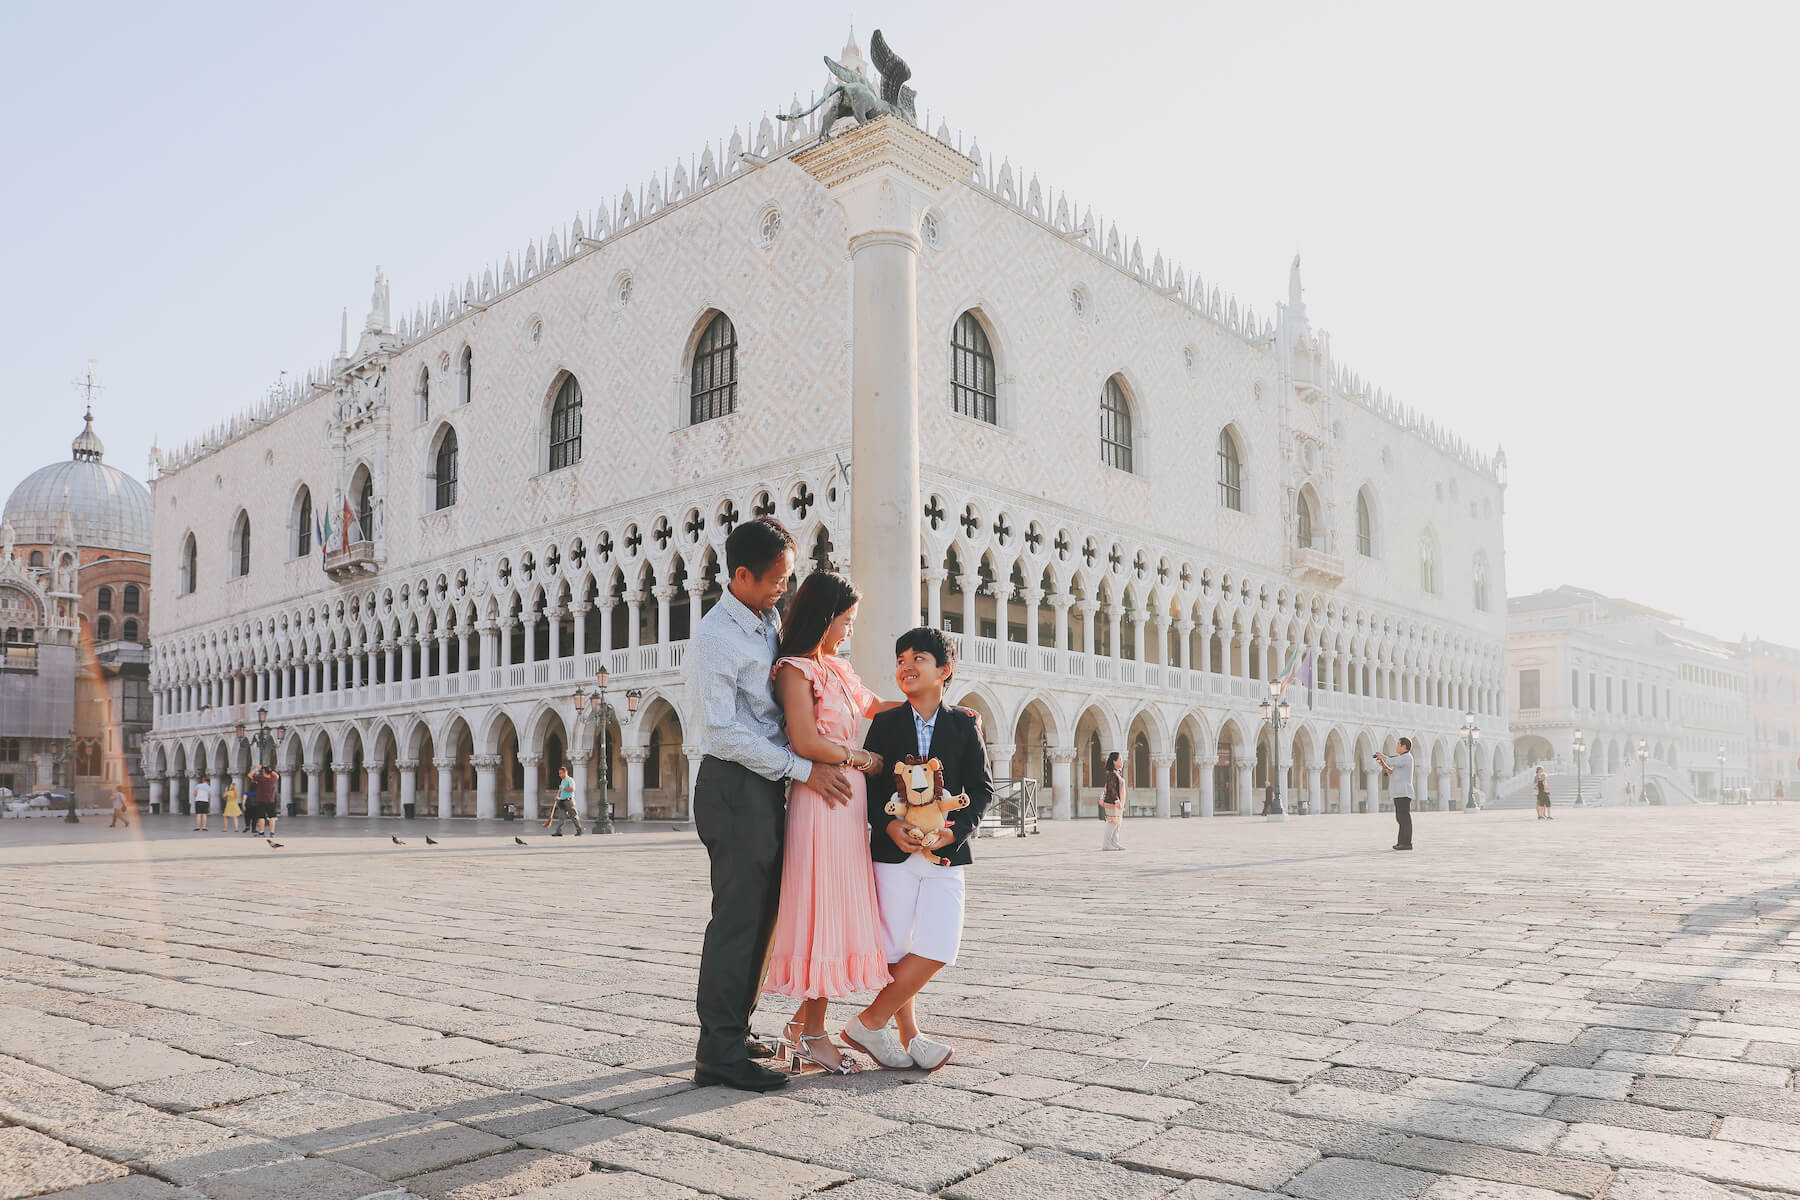 Most Instagrammable Spots in Venice